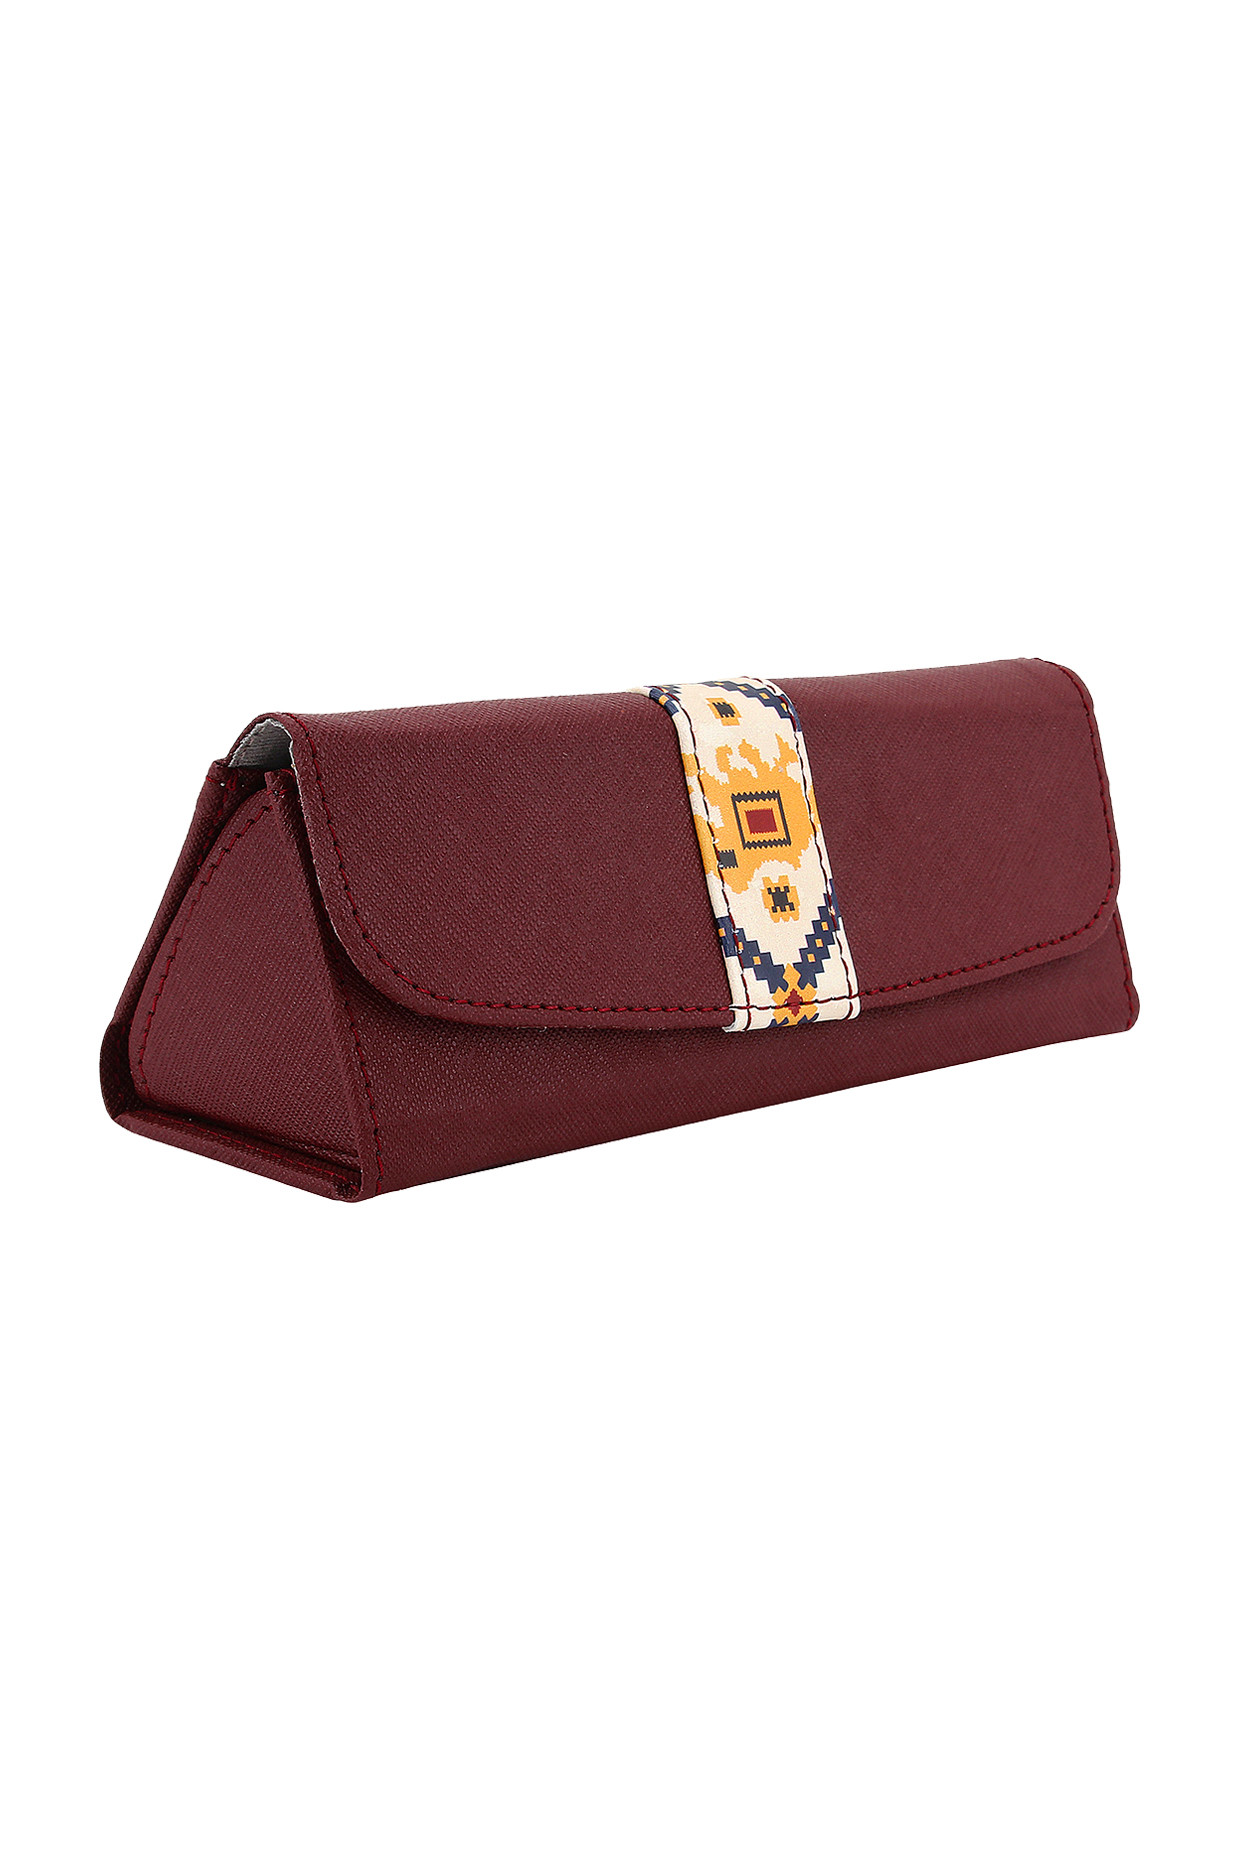 Maroon Printed Spectacle Case by Imars